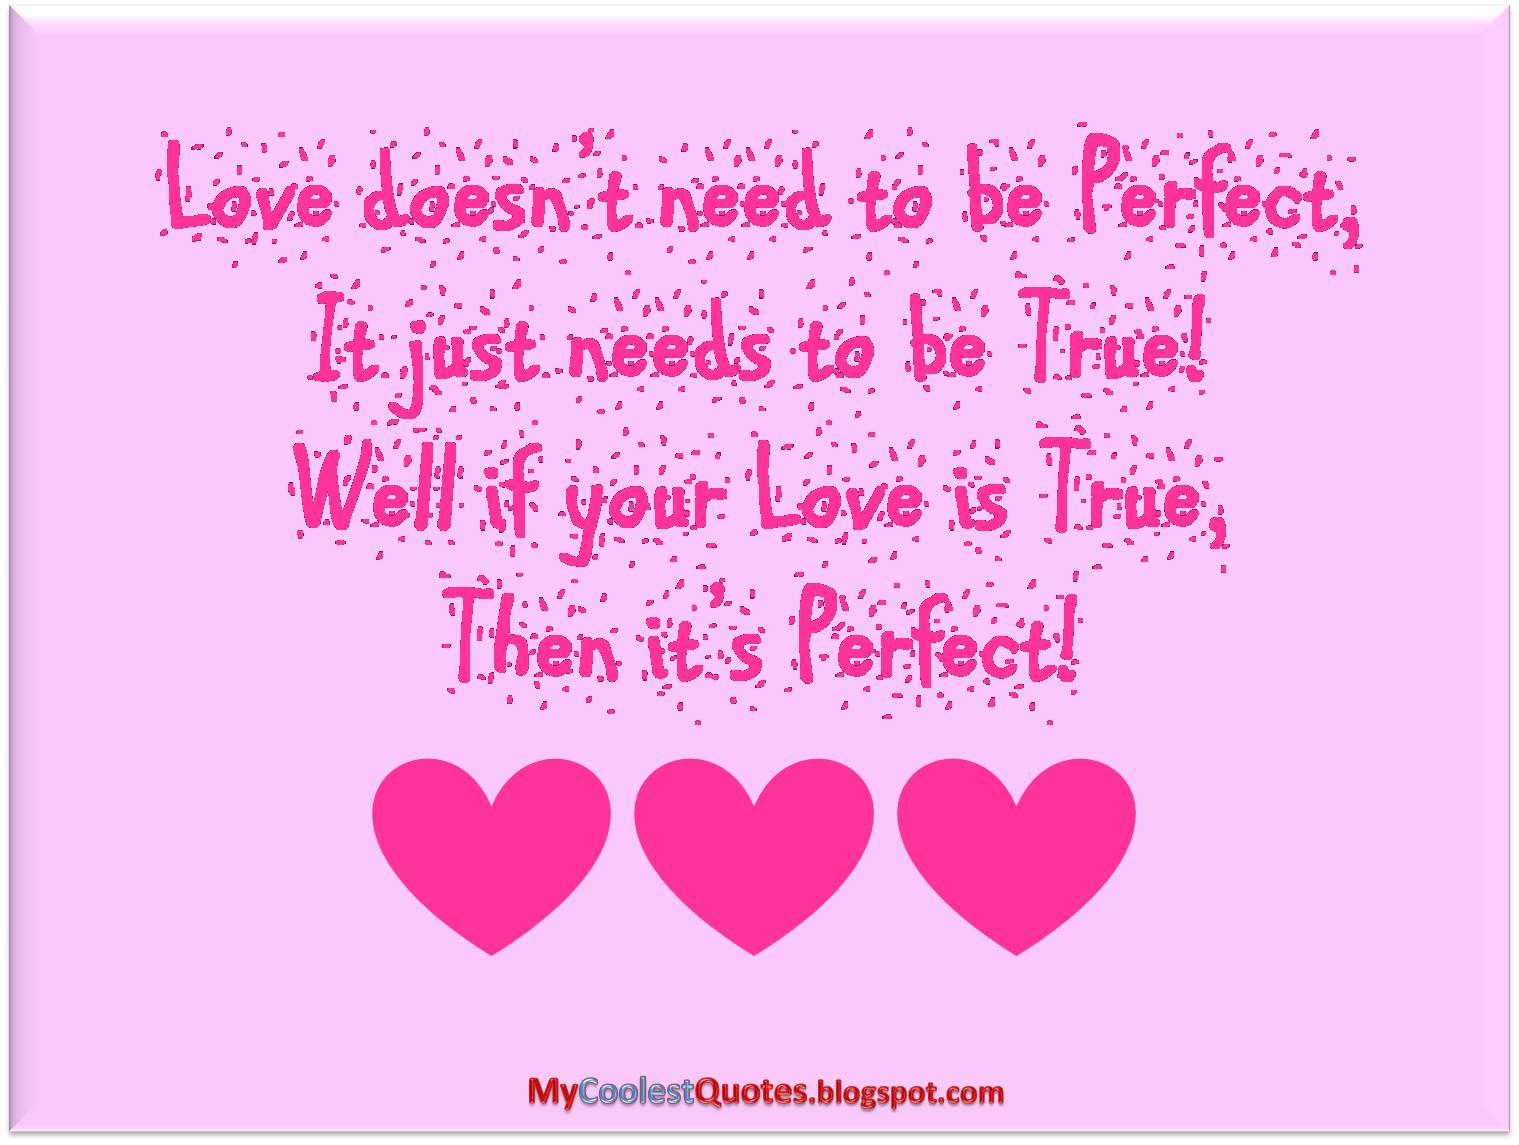 Love Quotes With Images My Coolest Quotes Wanna Know What's The Perfect Love